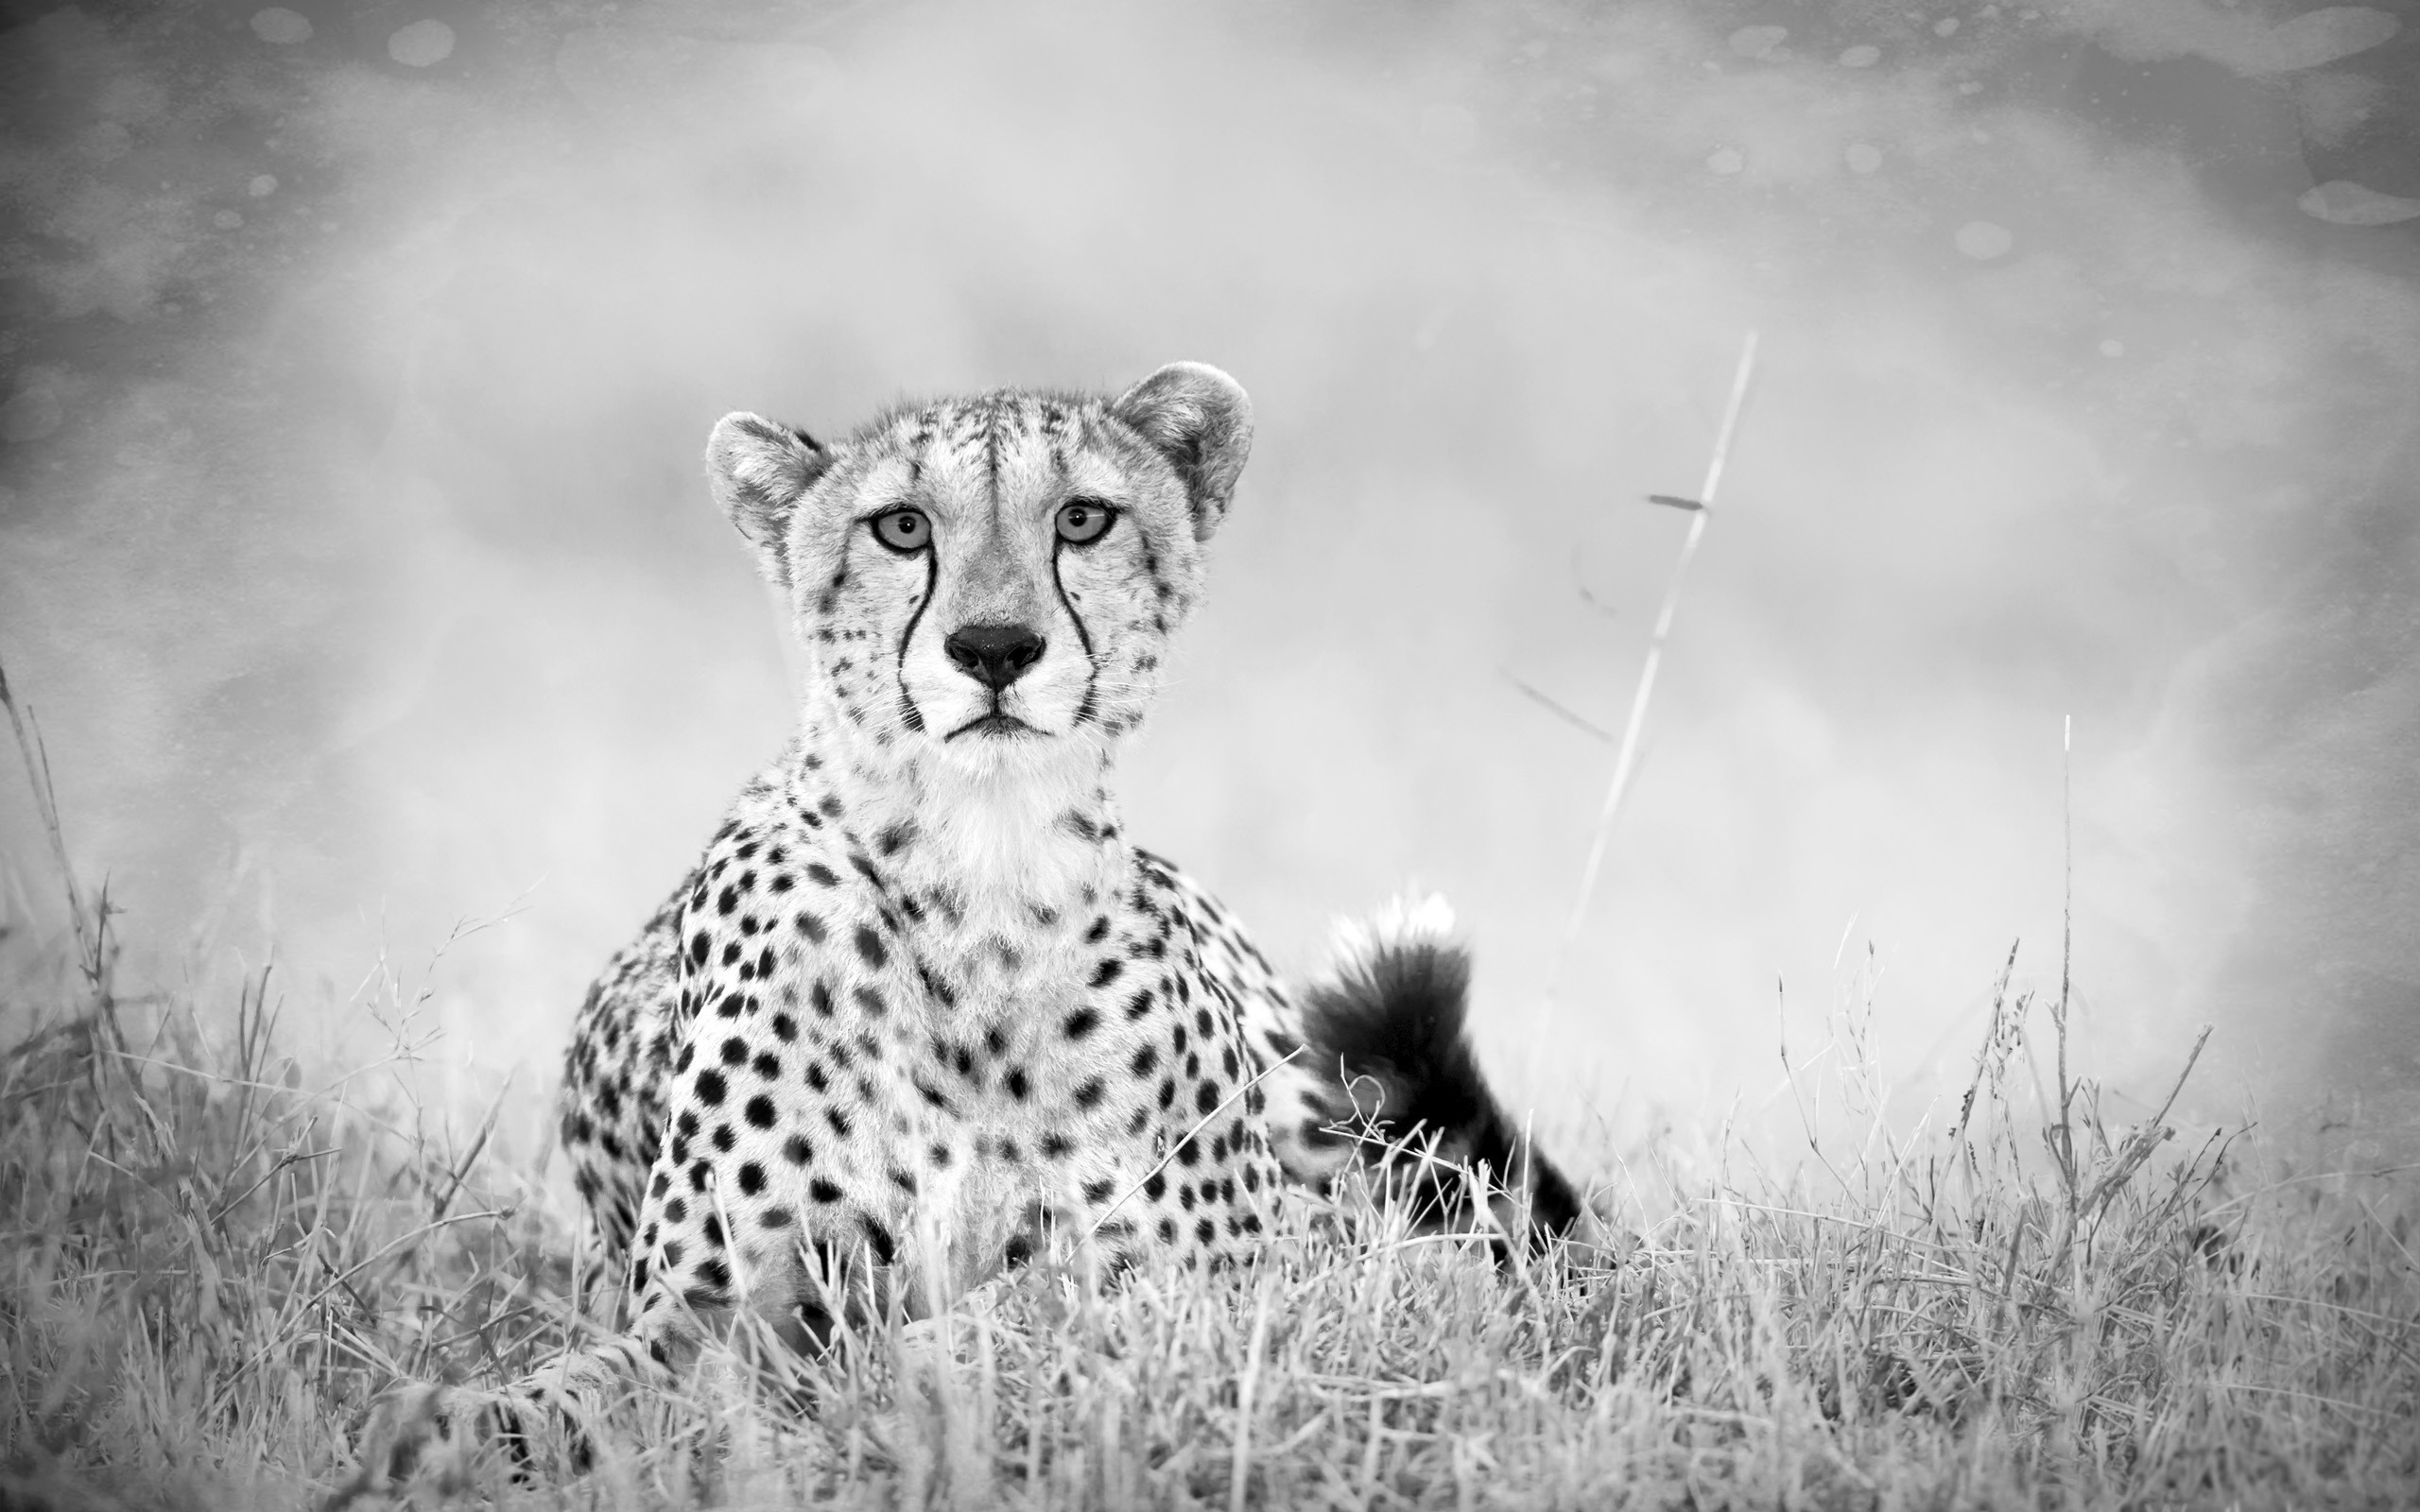 Black-and-white photo of a cheetah in the wild